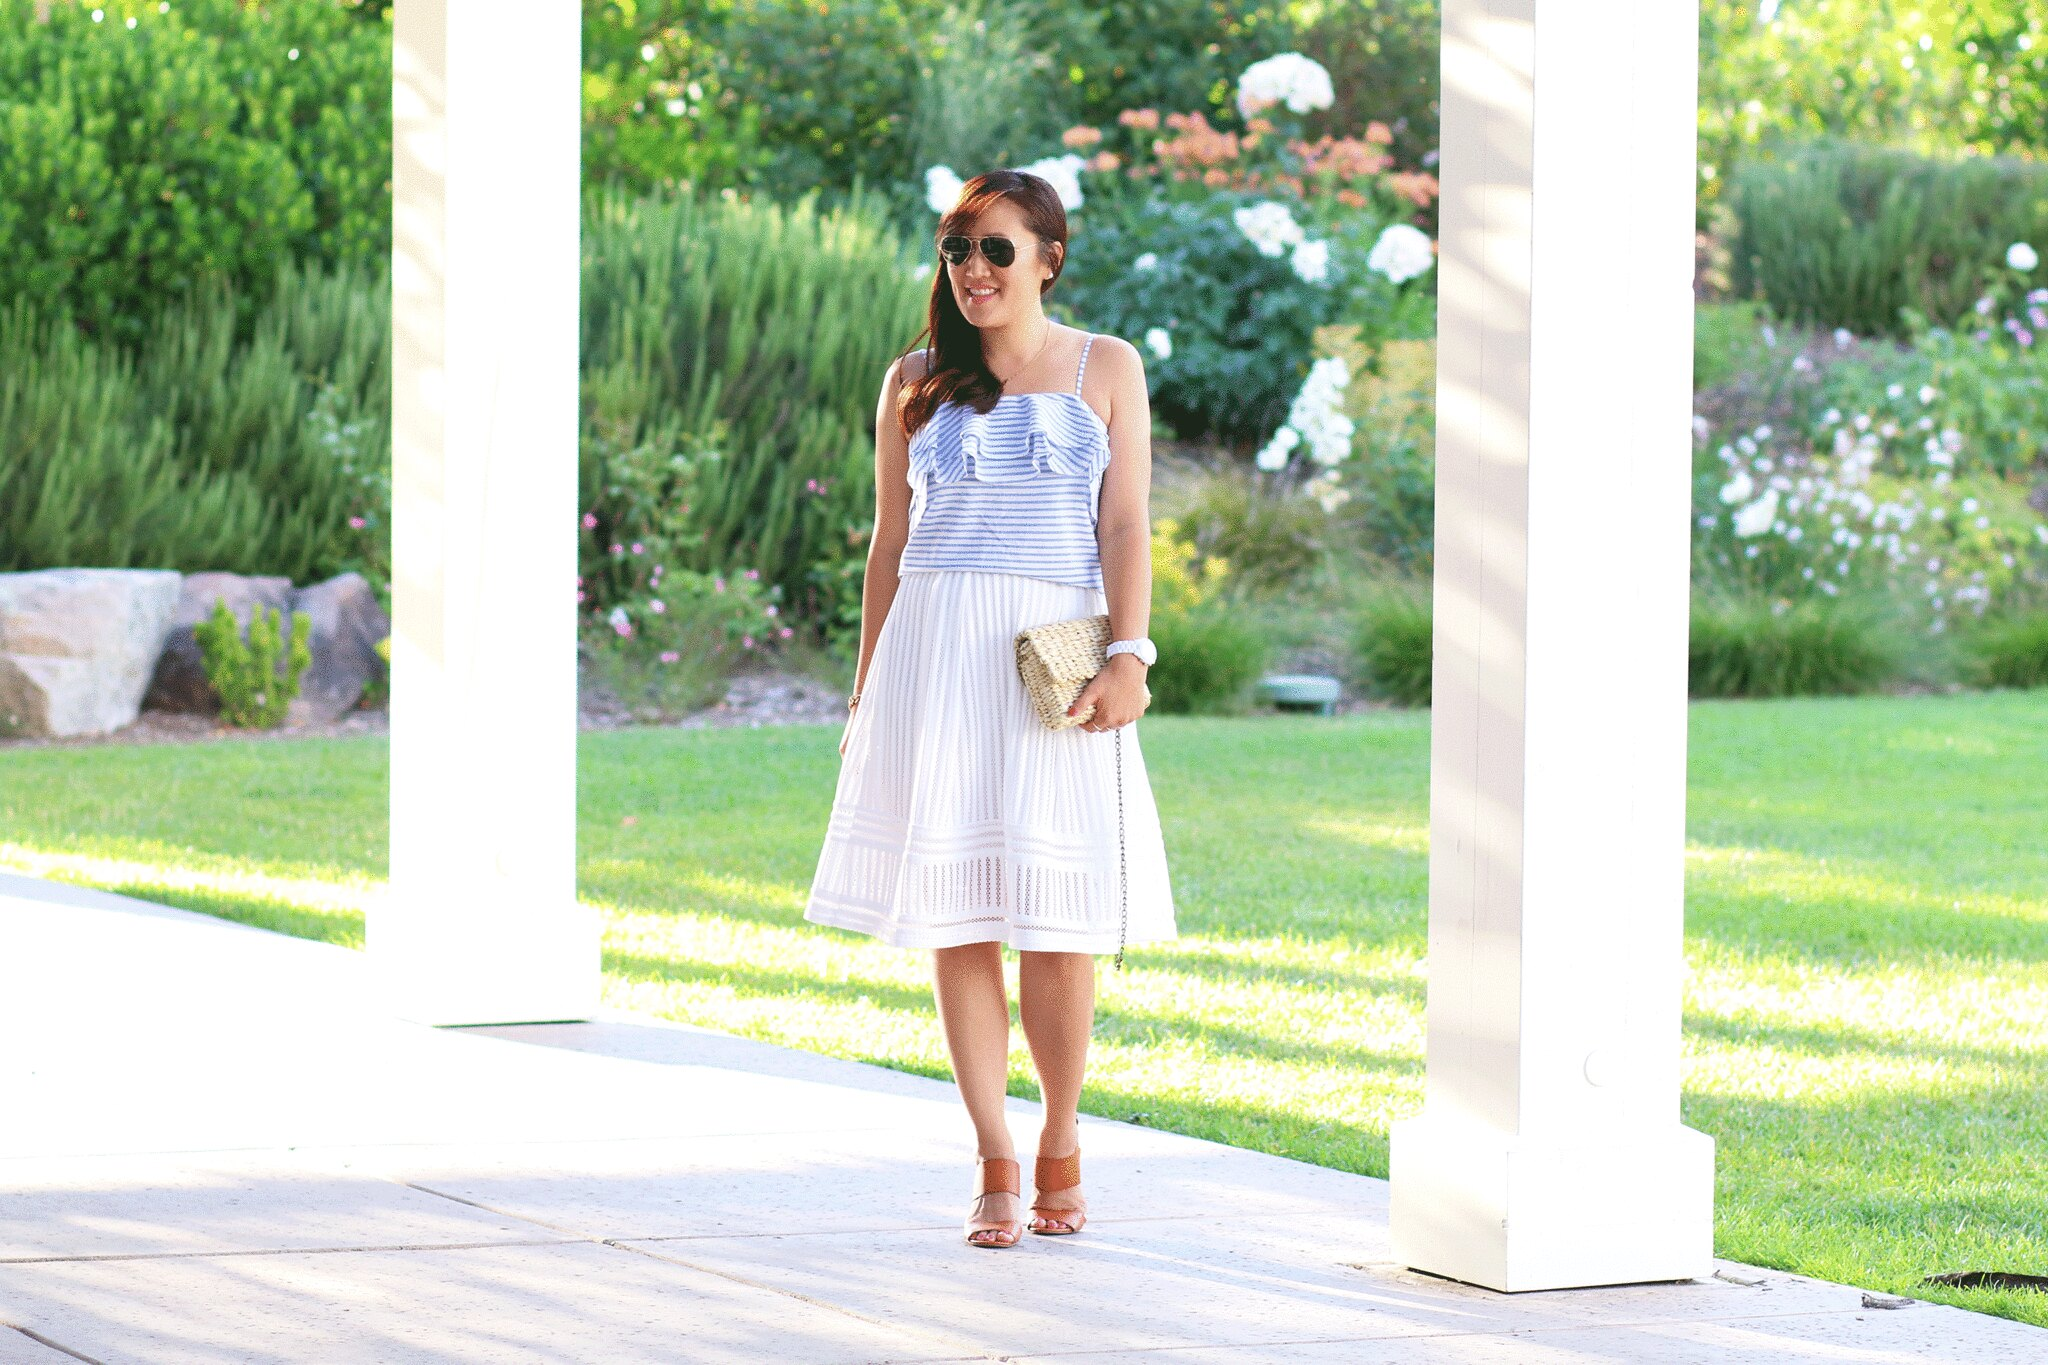 simplyxclassic, miriam gin, striped ruffle cami, white skirt, summer outfit, fashion blogger, woven bag, lifestyle blog, orange county,